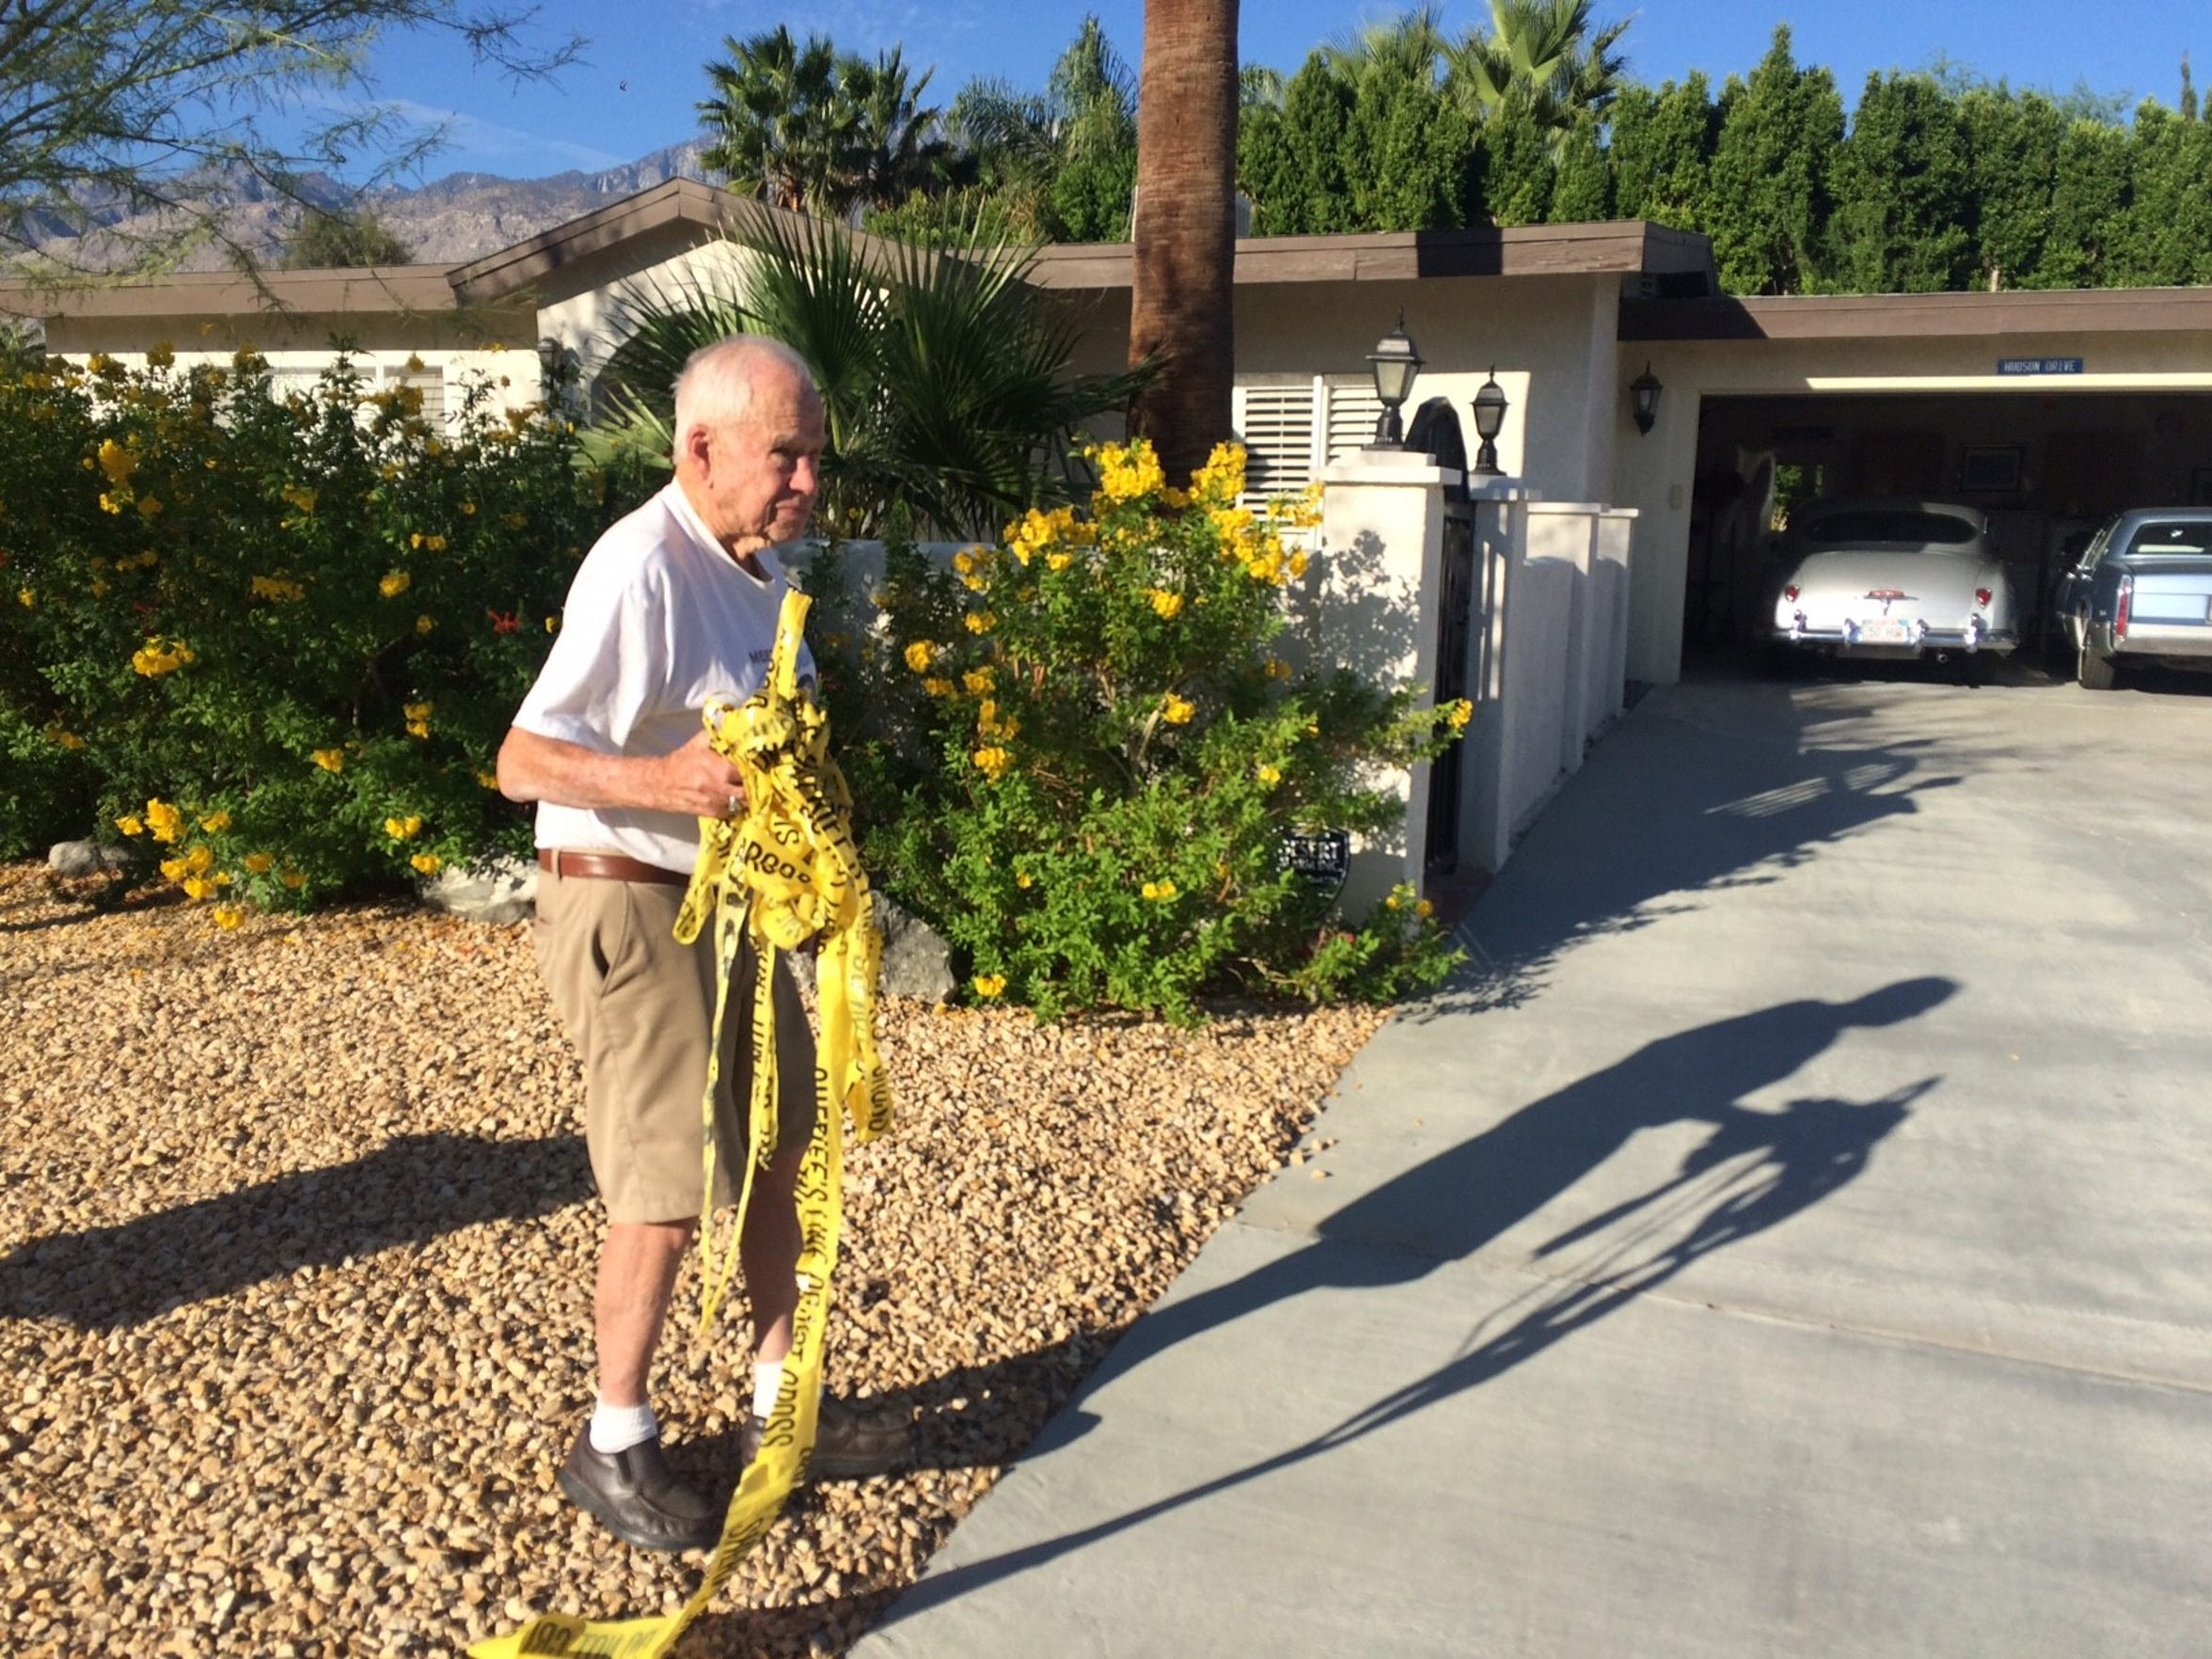 Fred Elg, 93, picks up handfuls of police tape left in his yard by police following a shooting Saturday that left two Palm Springs police officers dead and wounded a third.